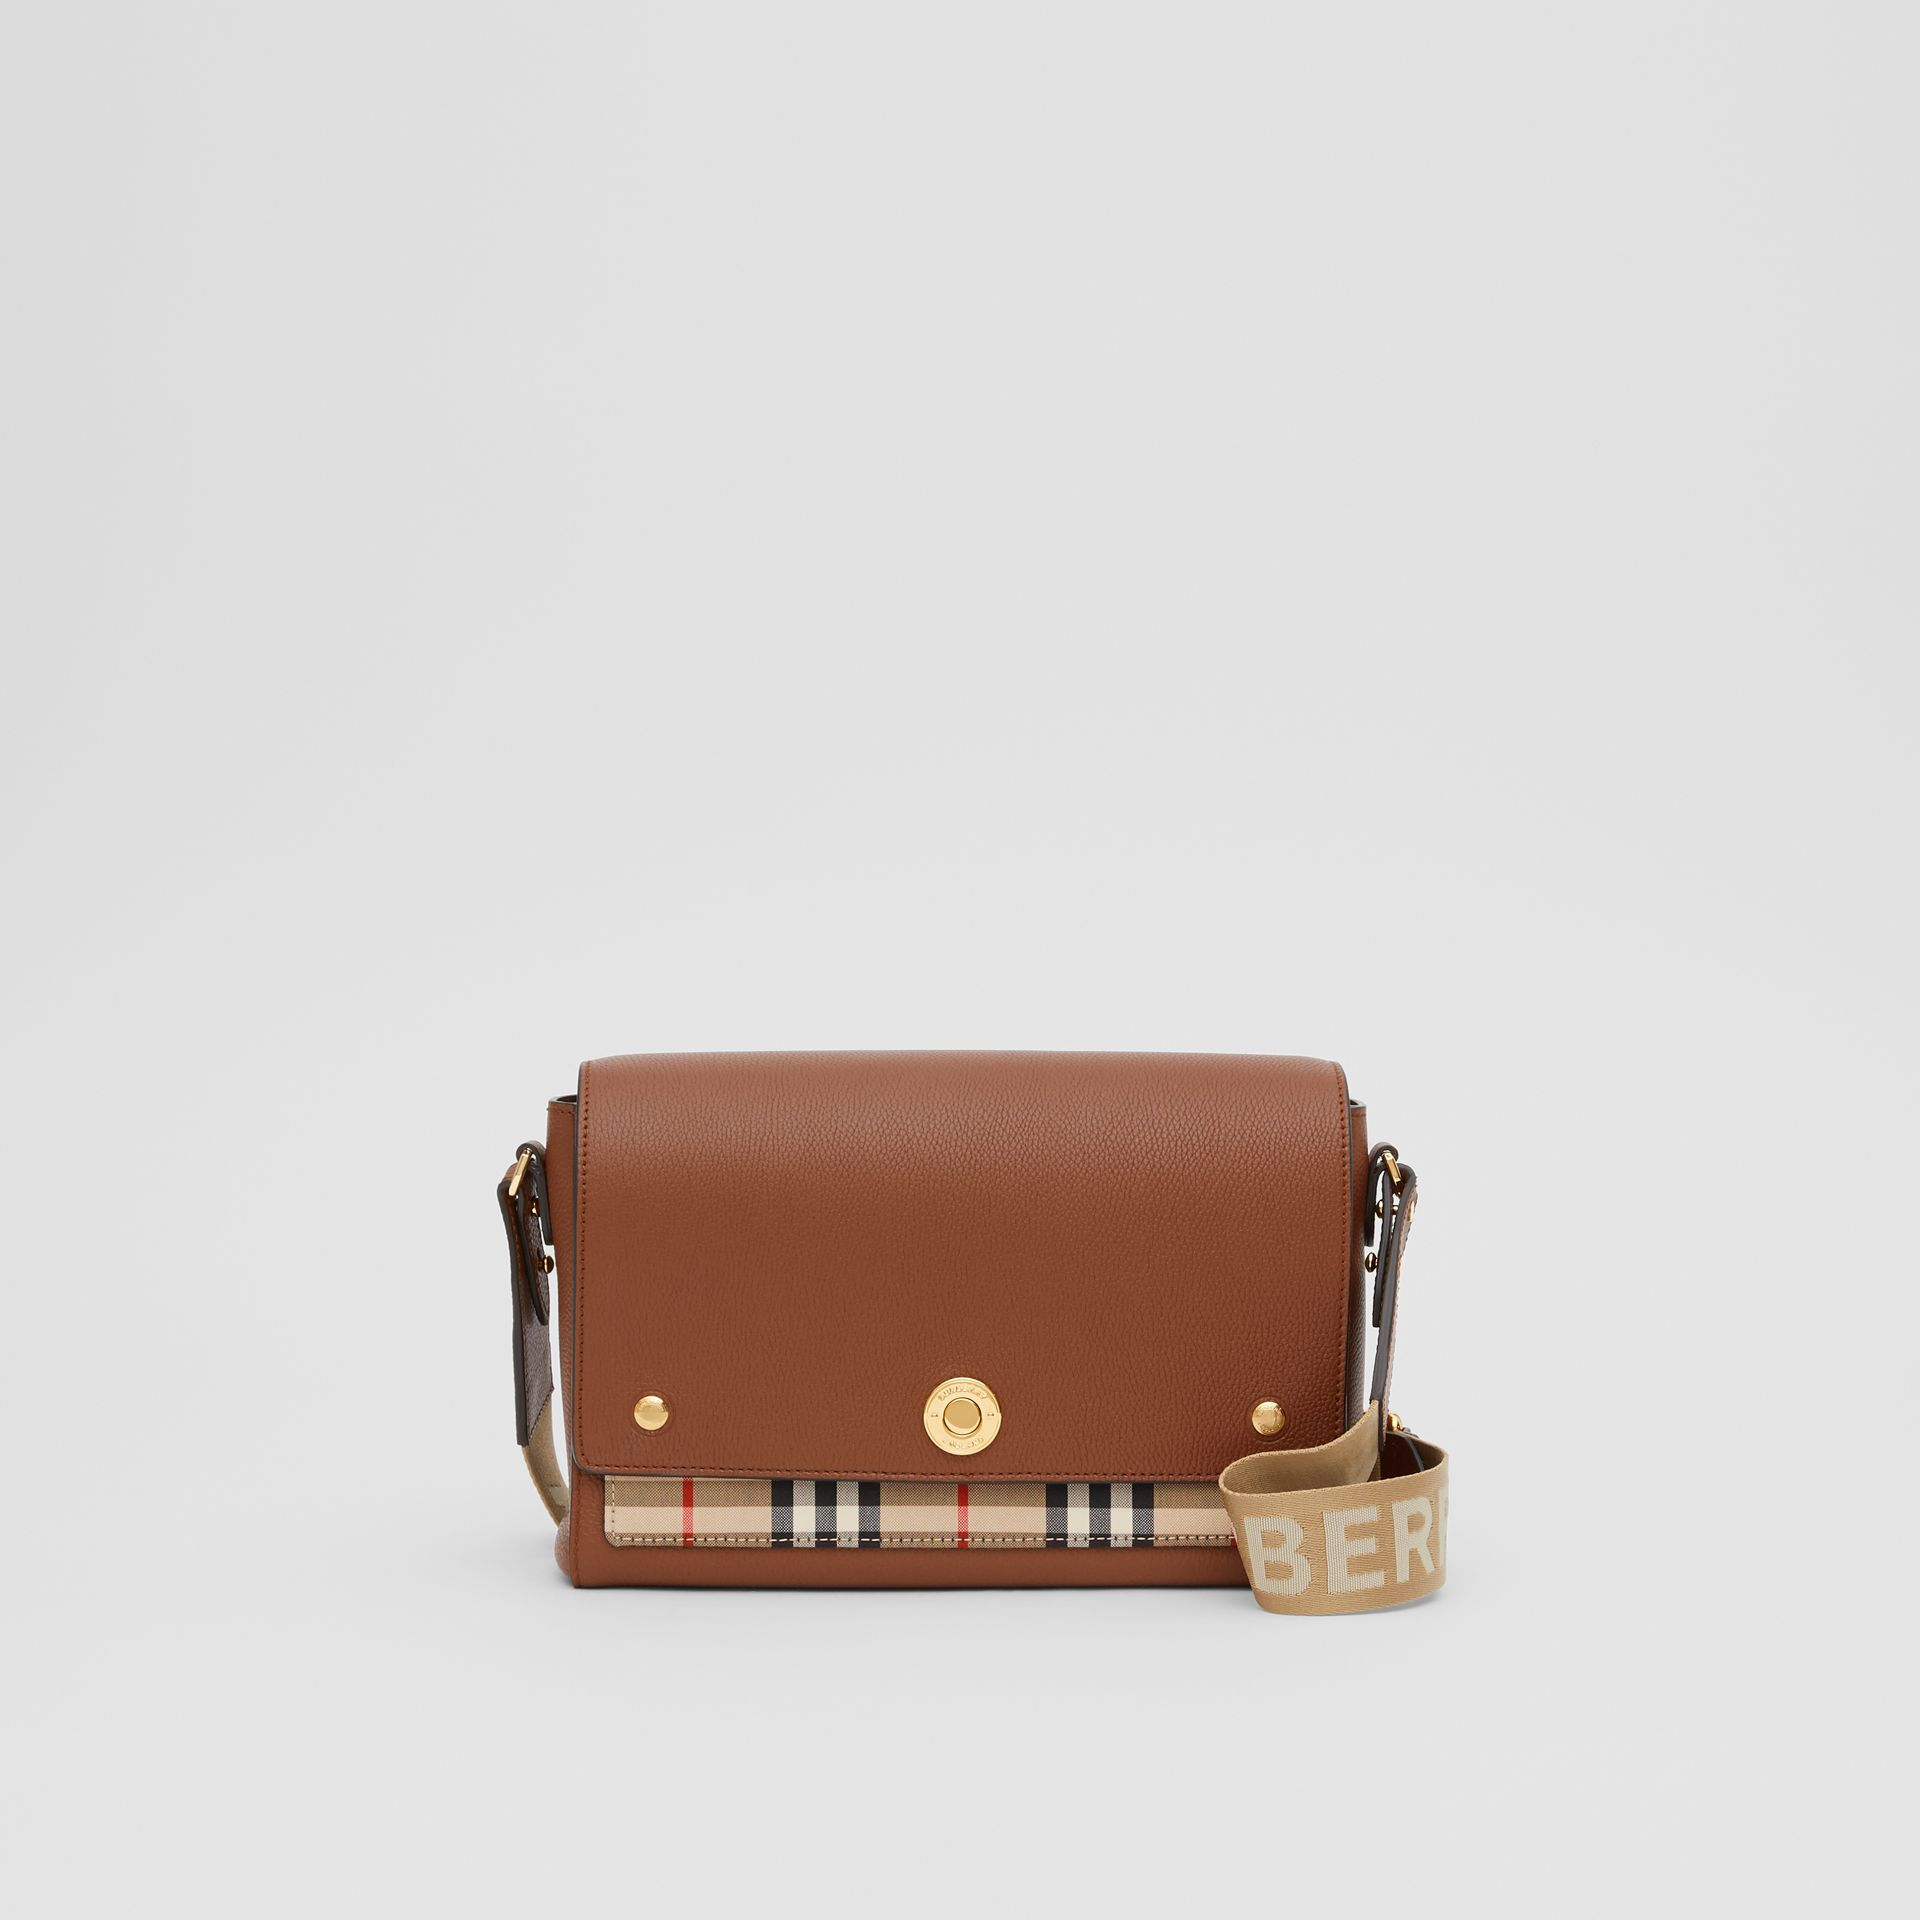 Leather and Vintage Check Note Crossbody Bag in Tan - Women | Burberry United States - gallery image 0